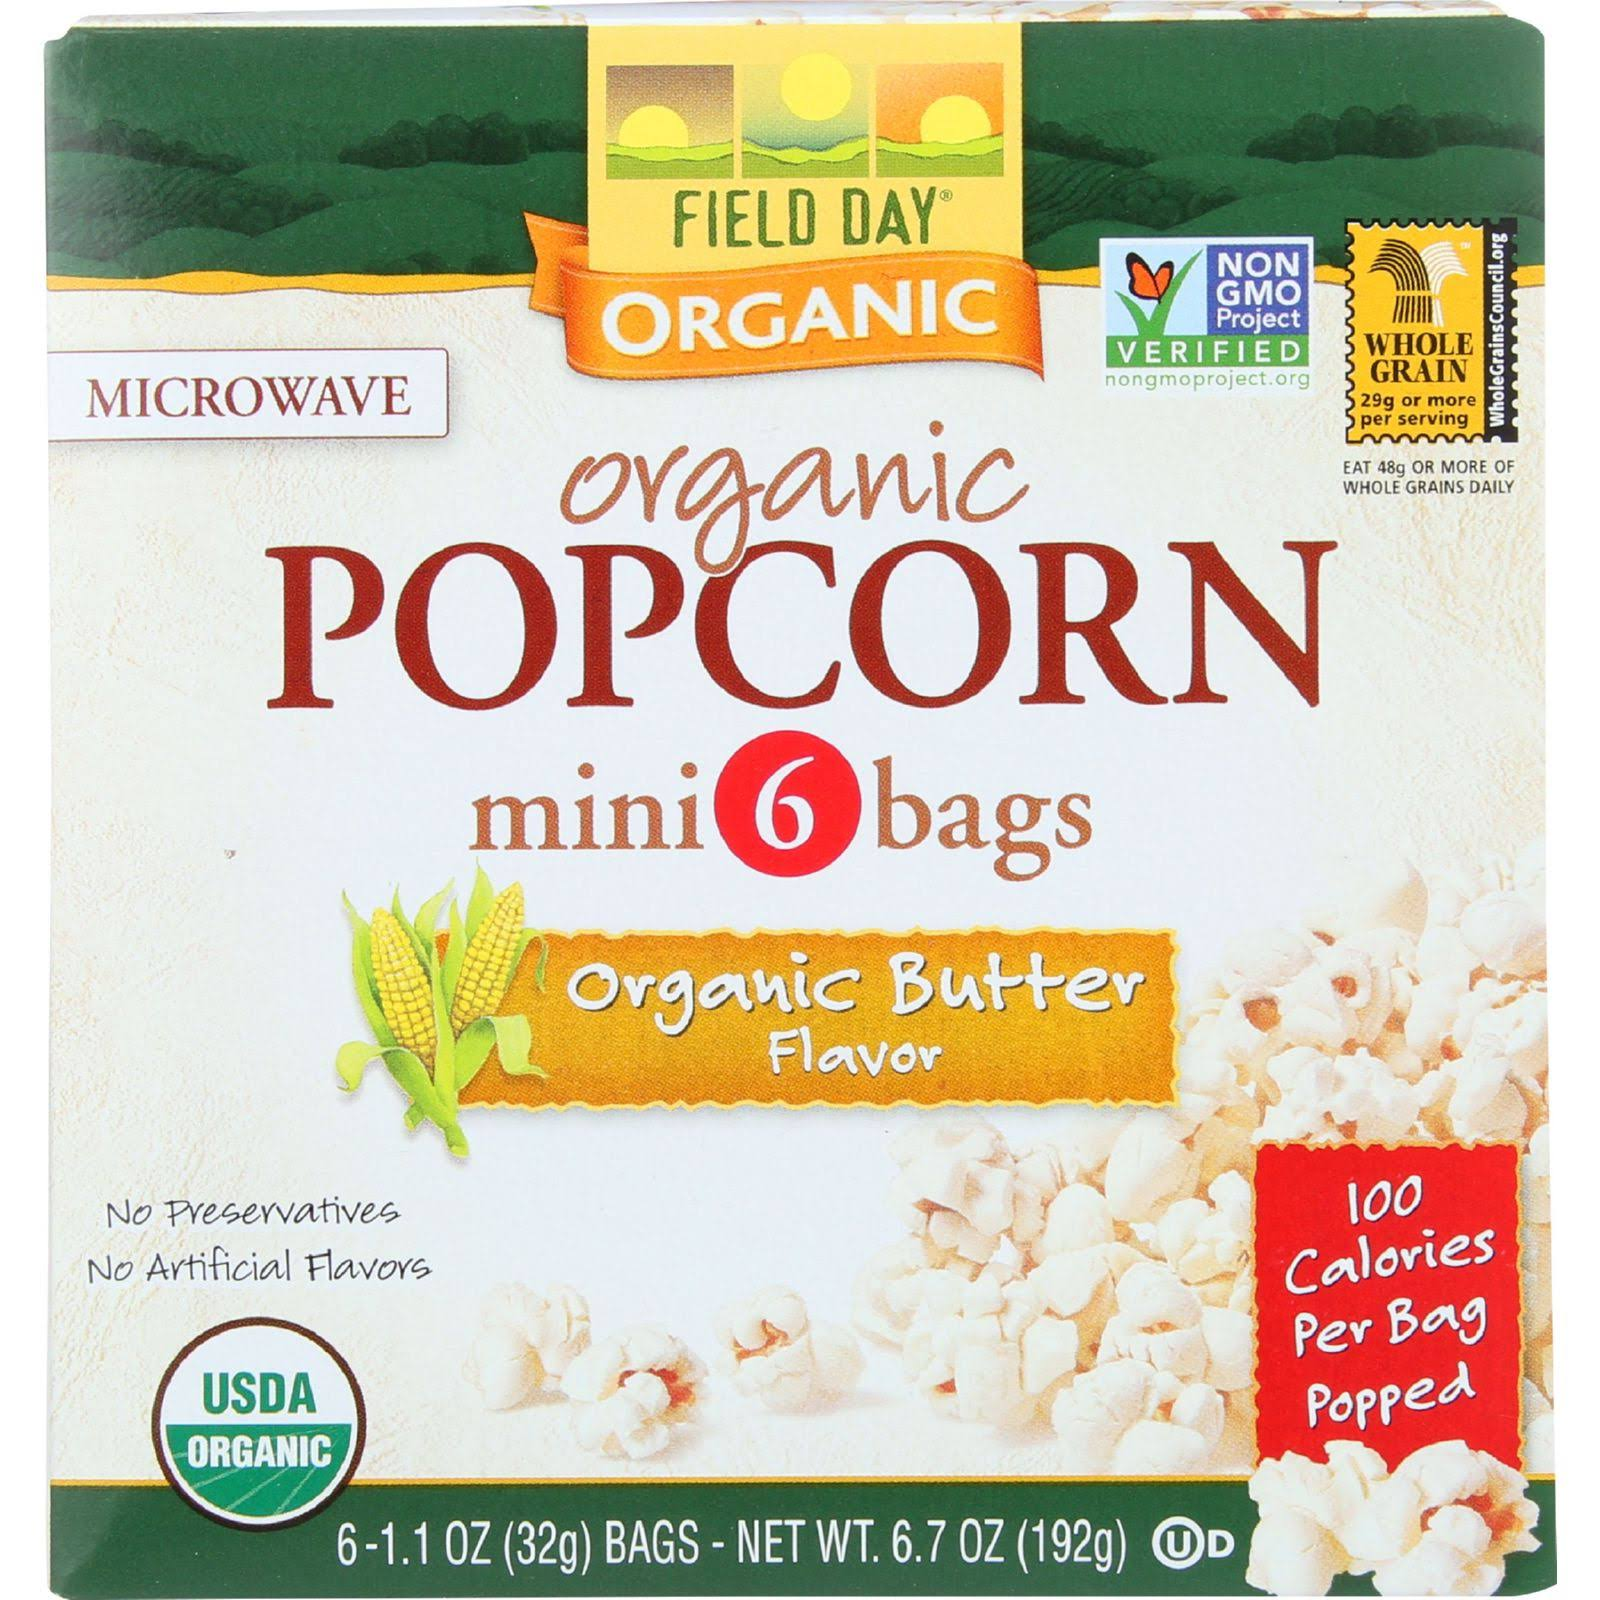 Field Day Microwave Popcorn, Organic Butter - 6 pack, 6.7 oz box